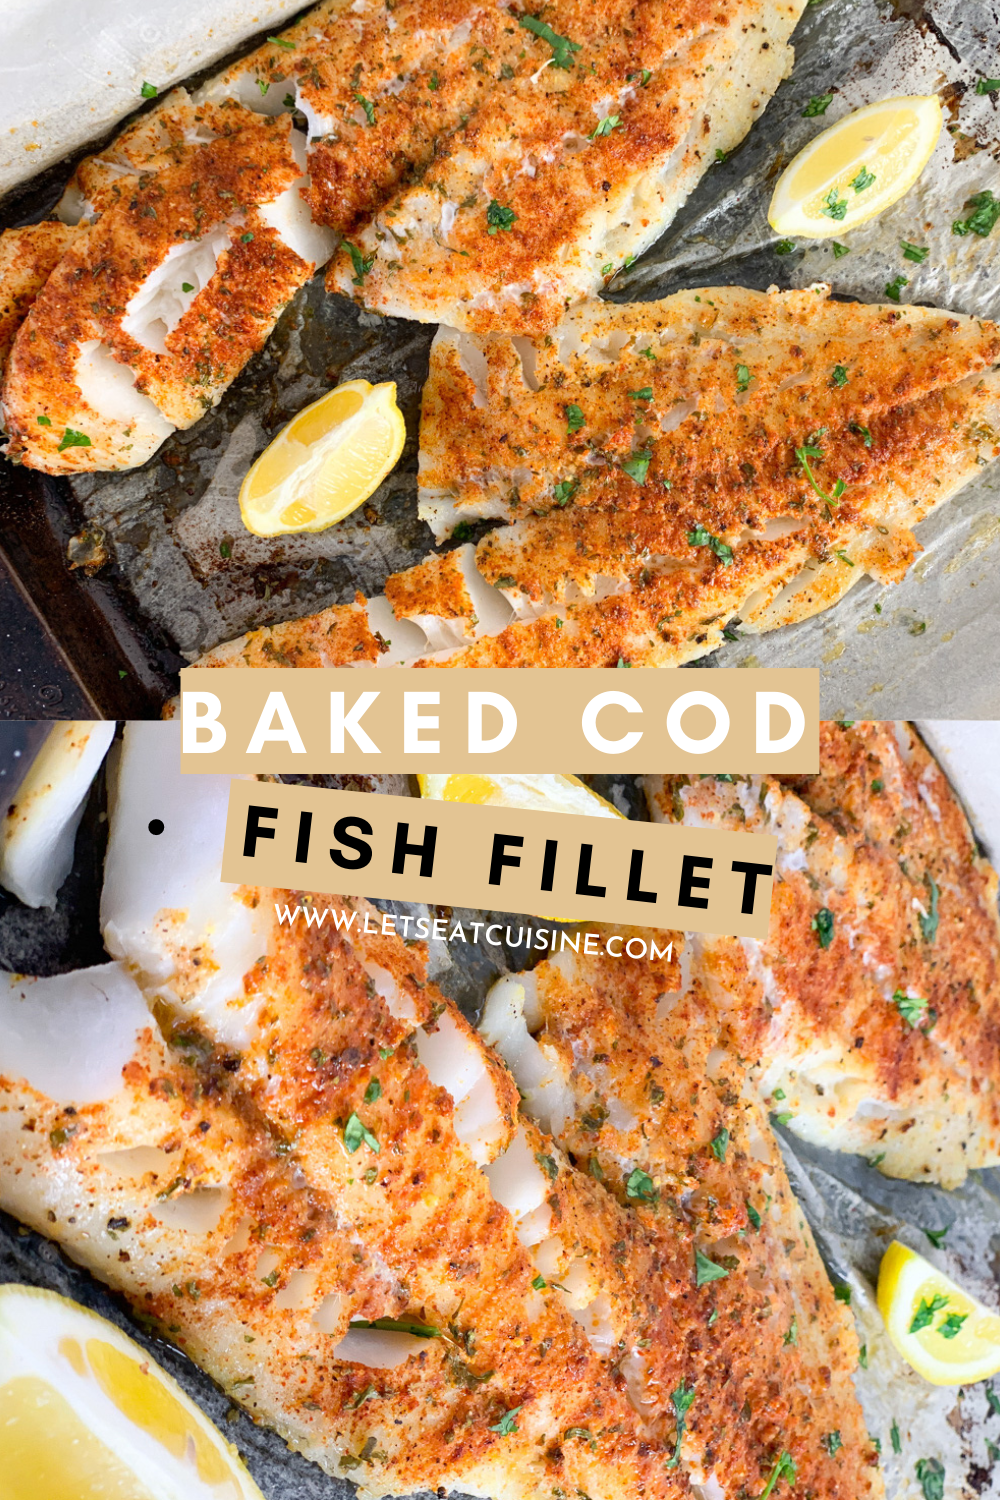 Baked Cod Is A Tender And Juicy Cod Filet Baked In A Cajun Seasoning With Lemon Juice Honey And Olive Oil Ma In 2020 Cod Fish Recipes Baked Baked Cod Cod